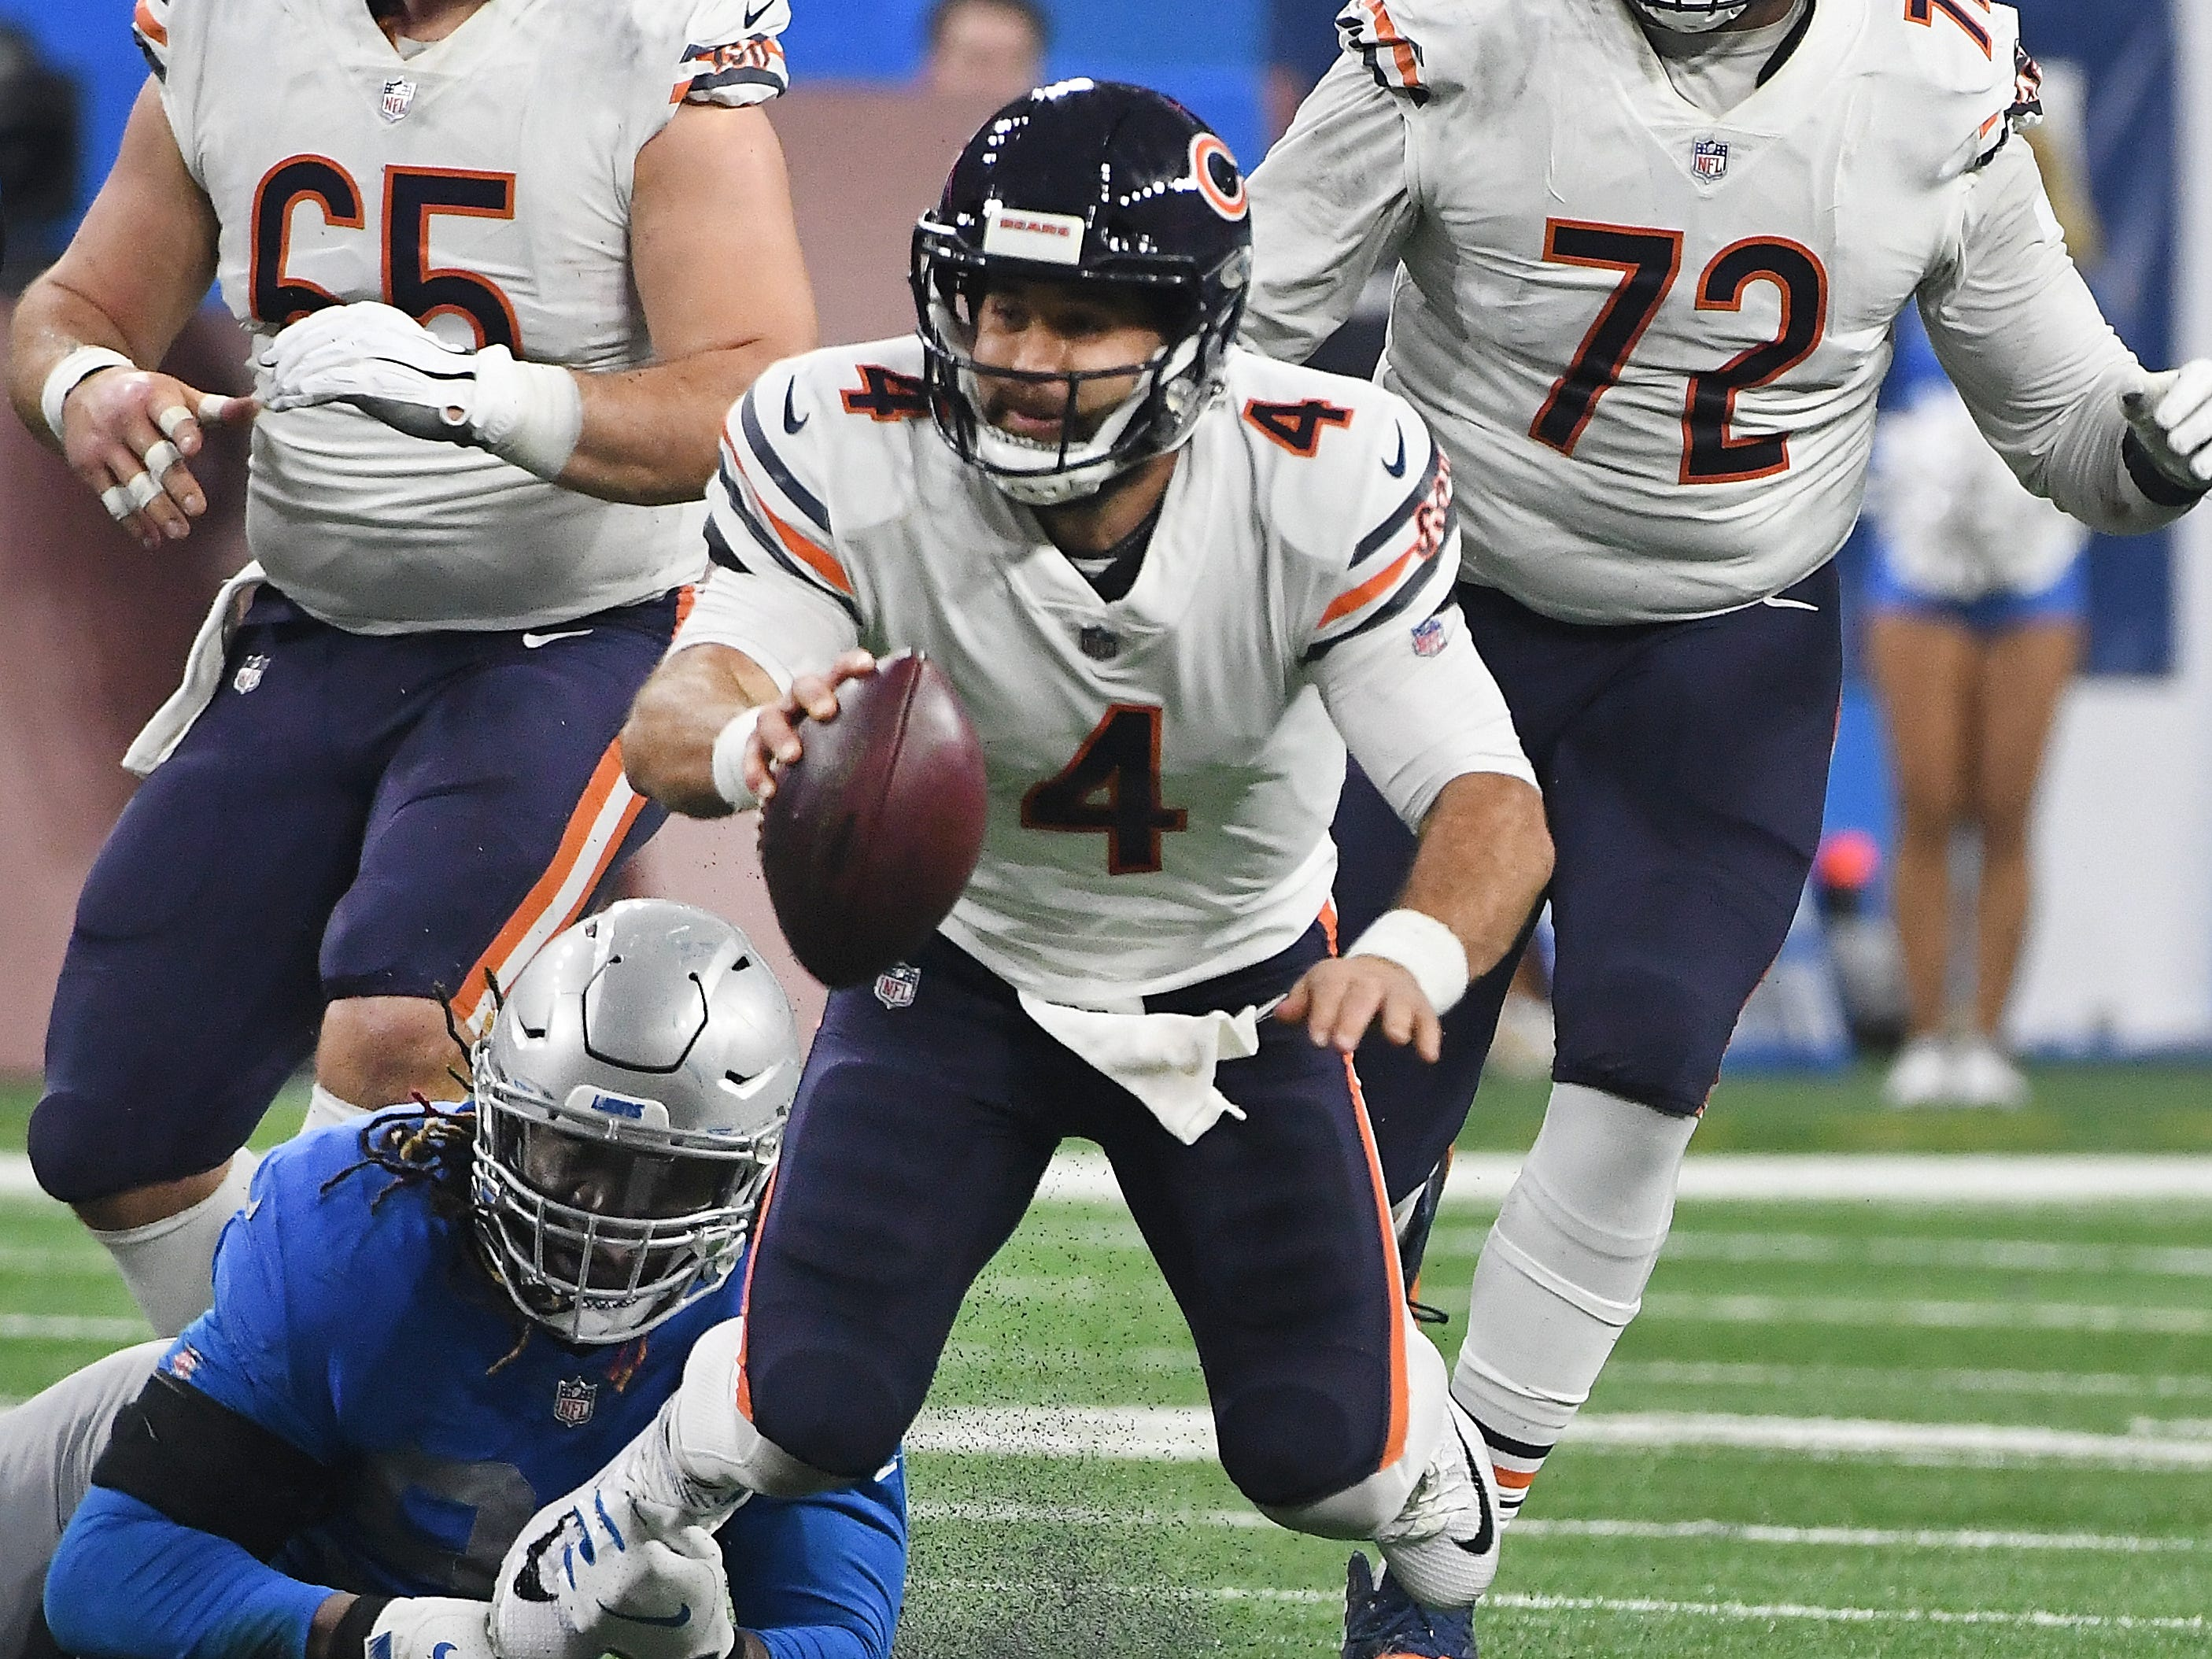 Bears quarterback Chad Daniel is sacked by Lions' Ezekiel Ansah in the third quarter.